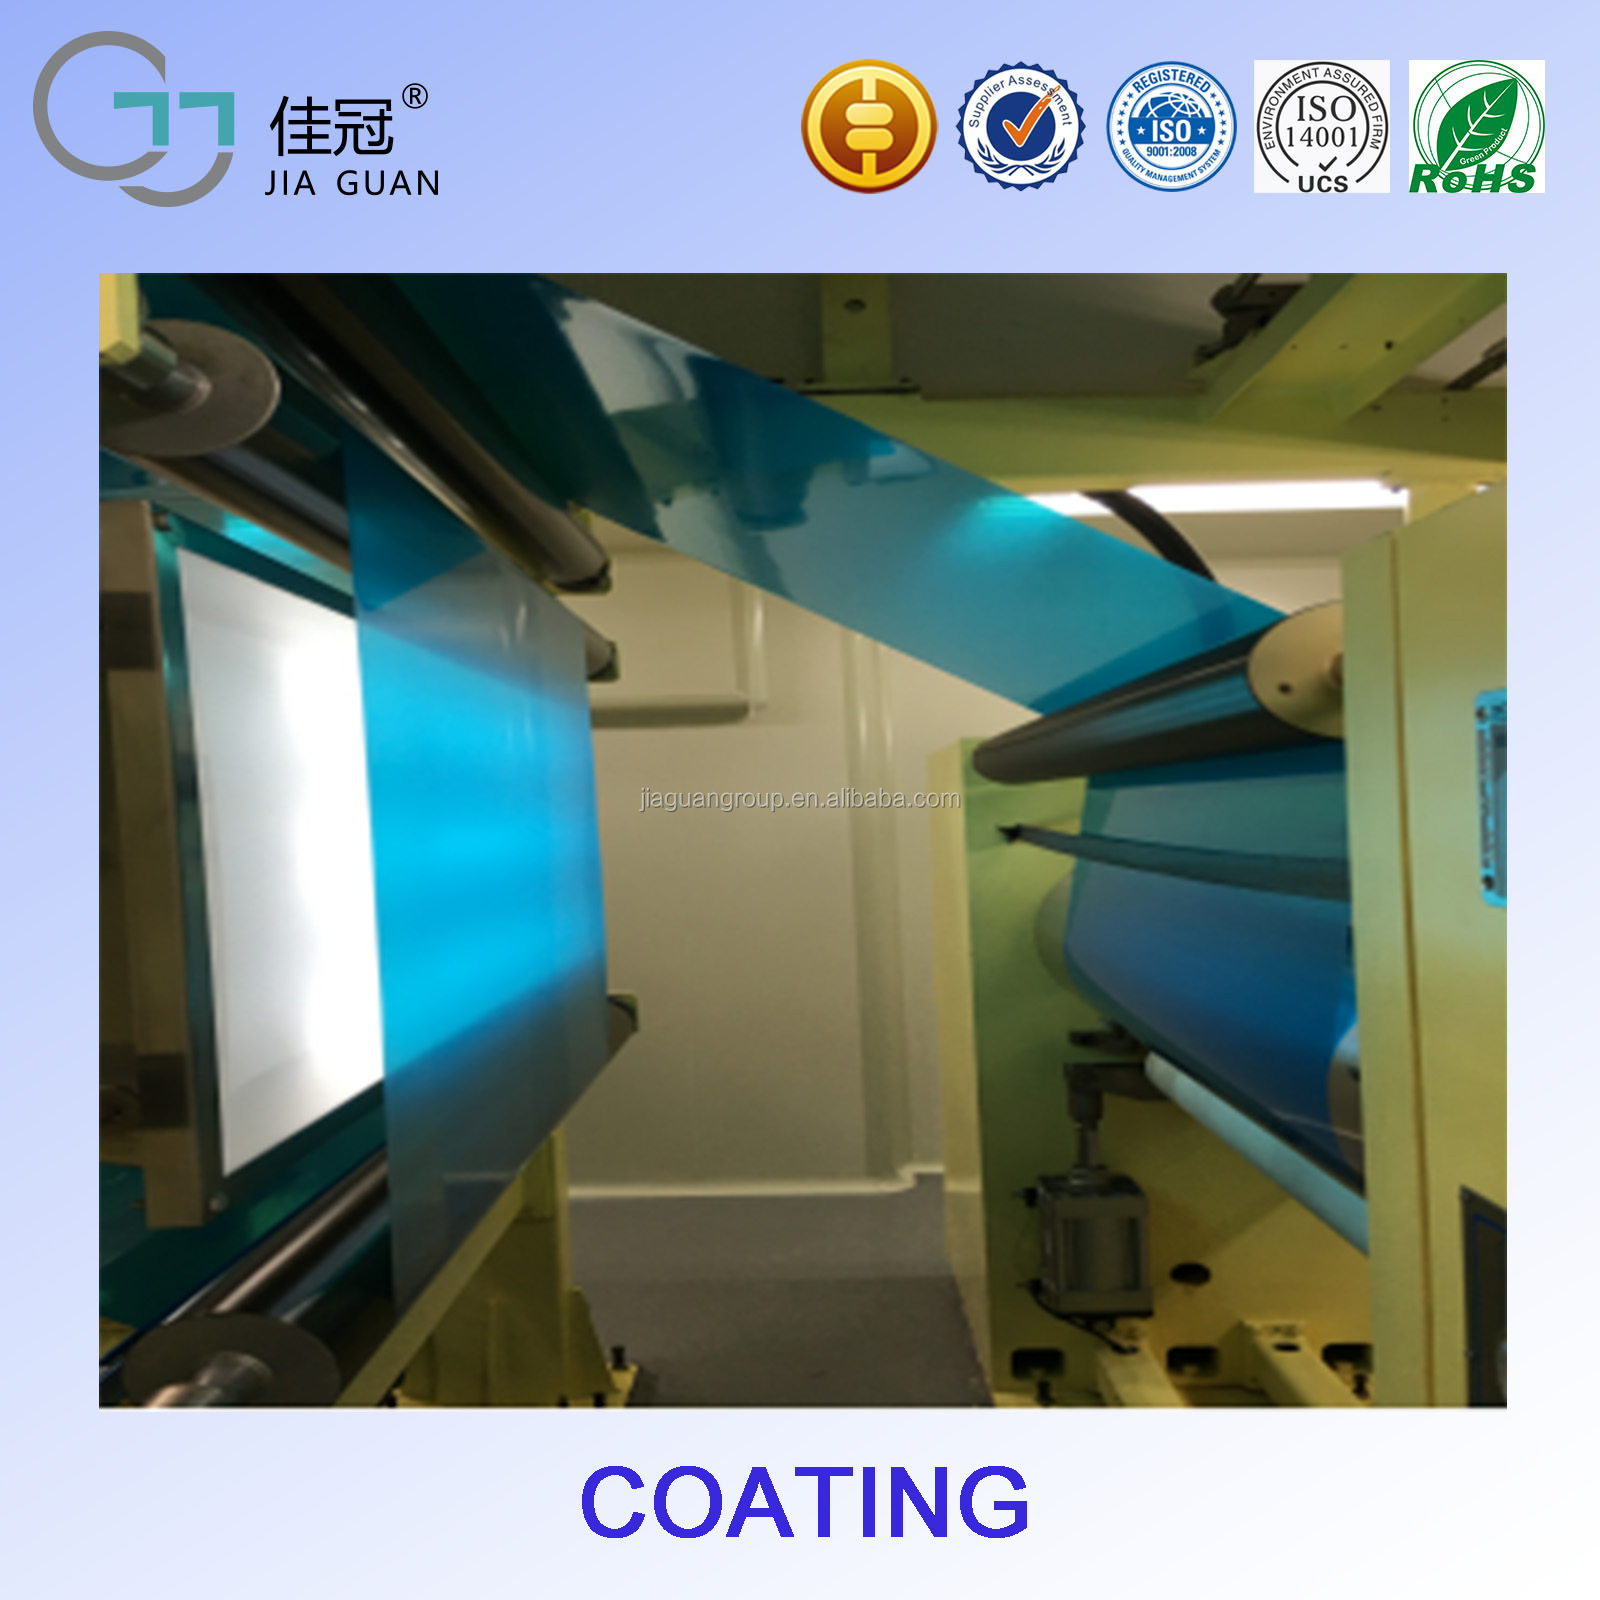 The High Temperature Resistant 100 Micron PET Film